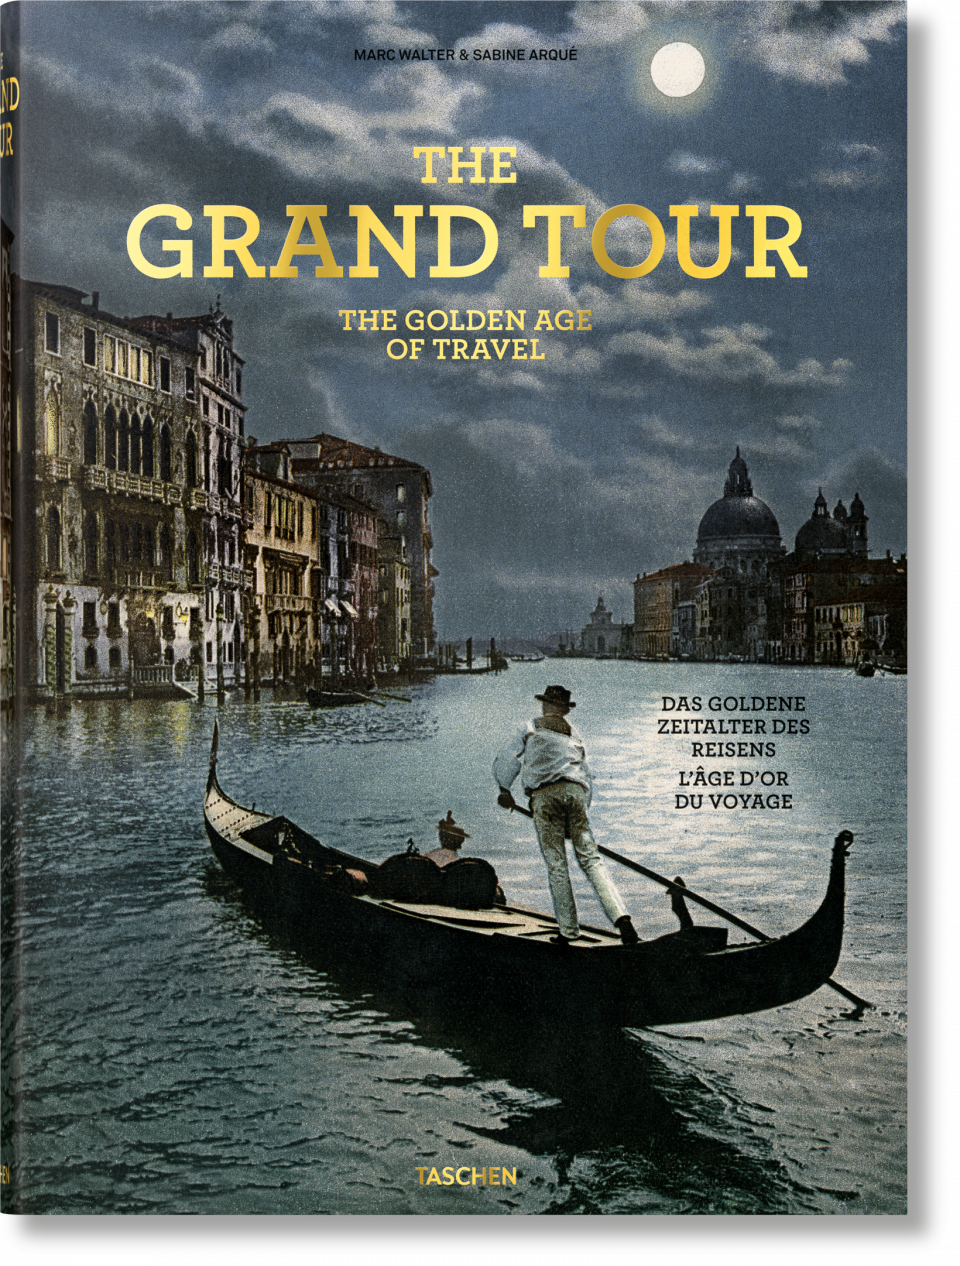 The Grand Tour - Walter Marc